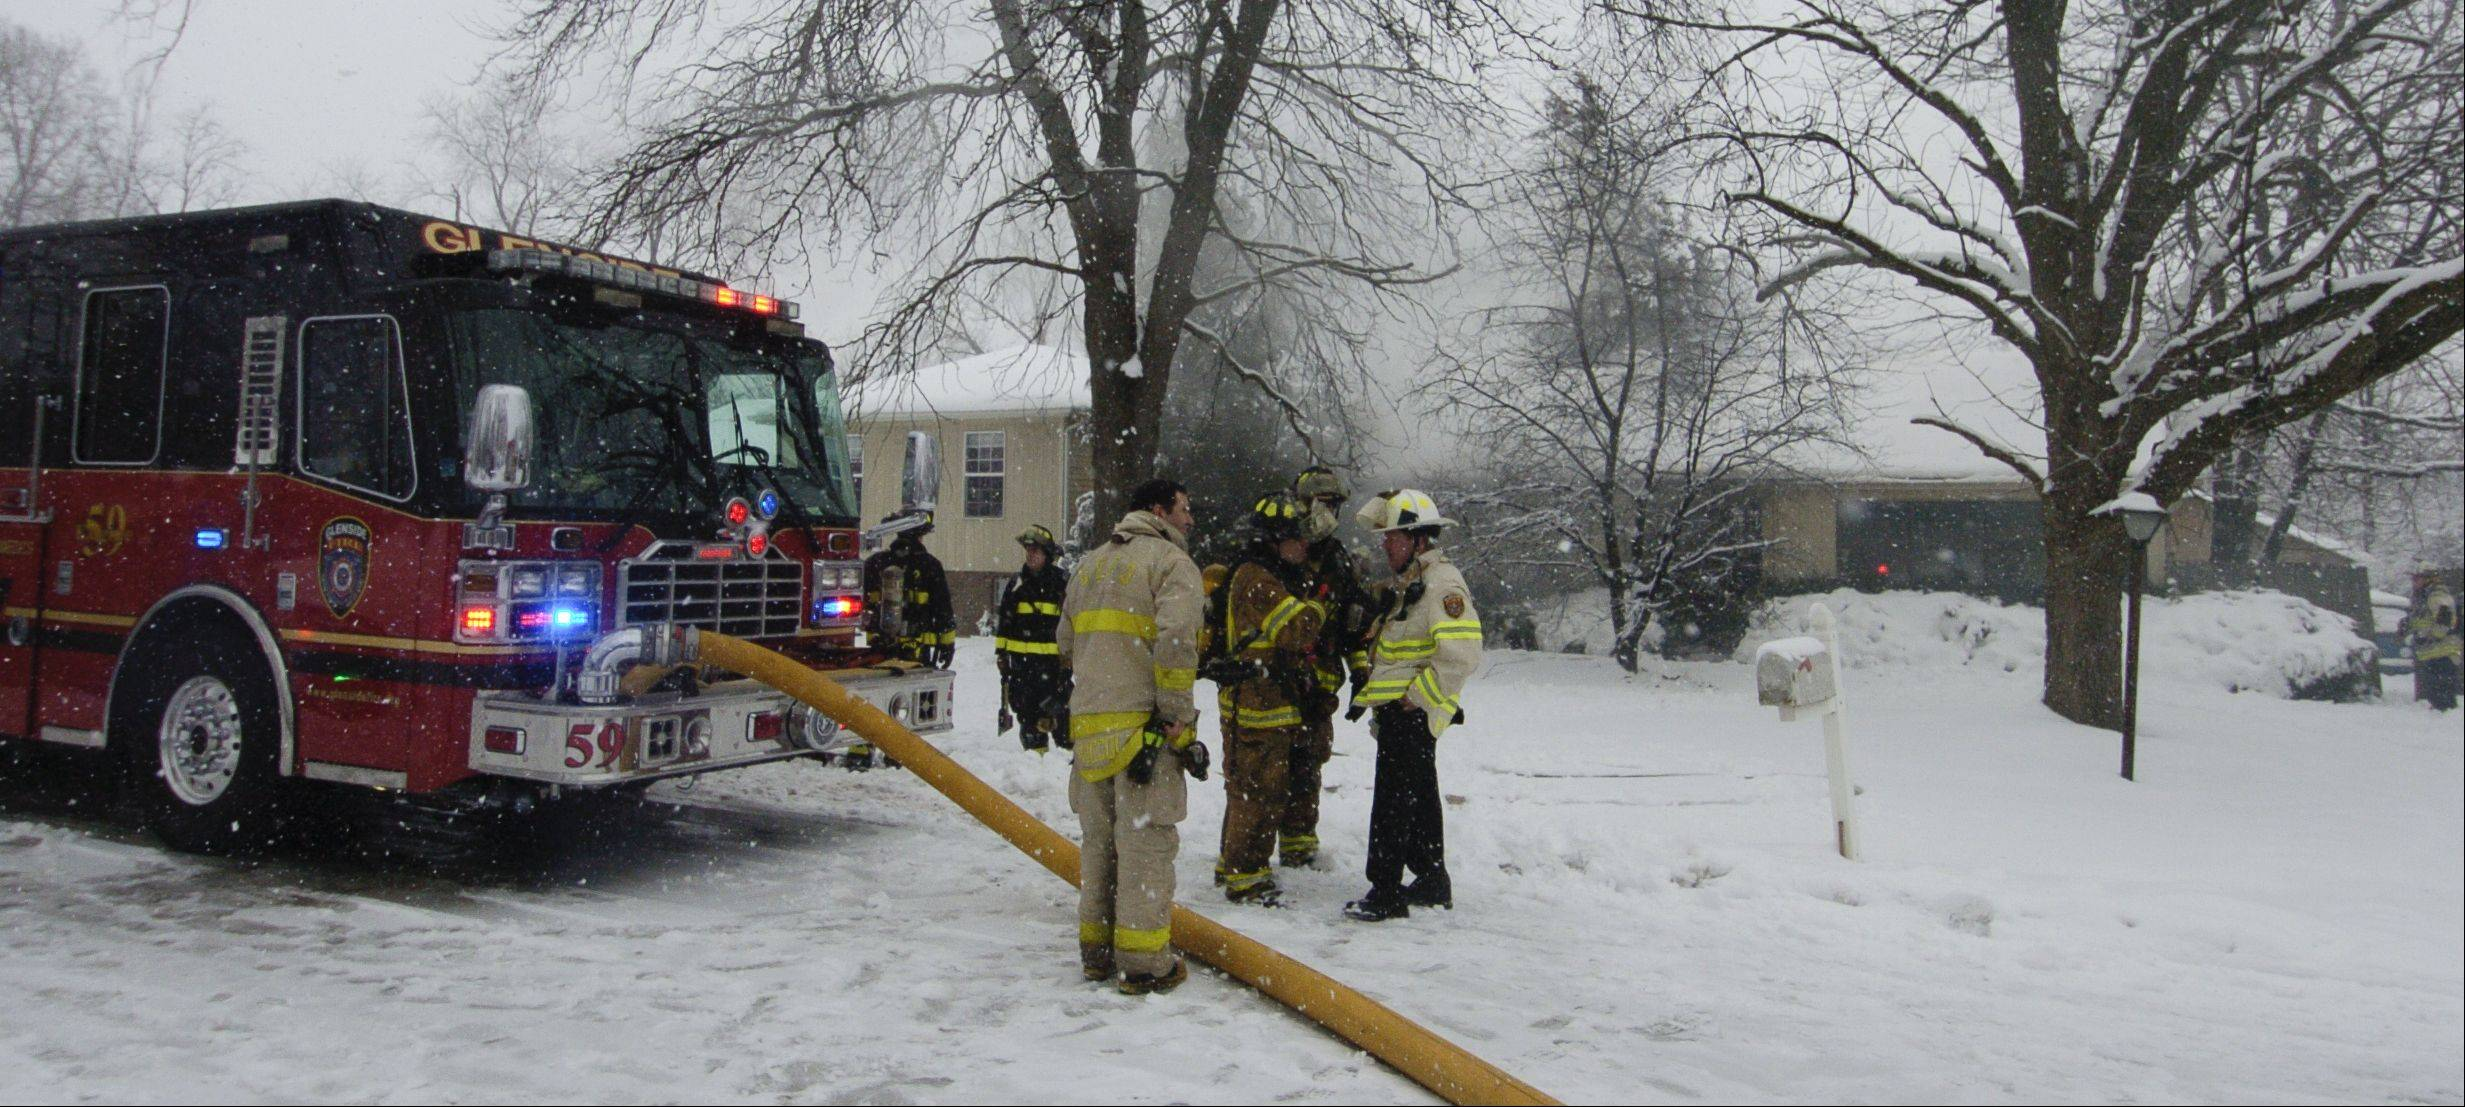 Fire on Tuesday caused extensive damage to a one-story house near Glen Ellyn.